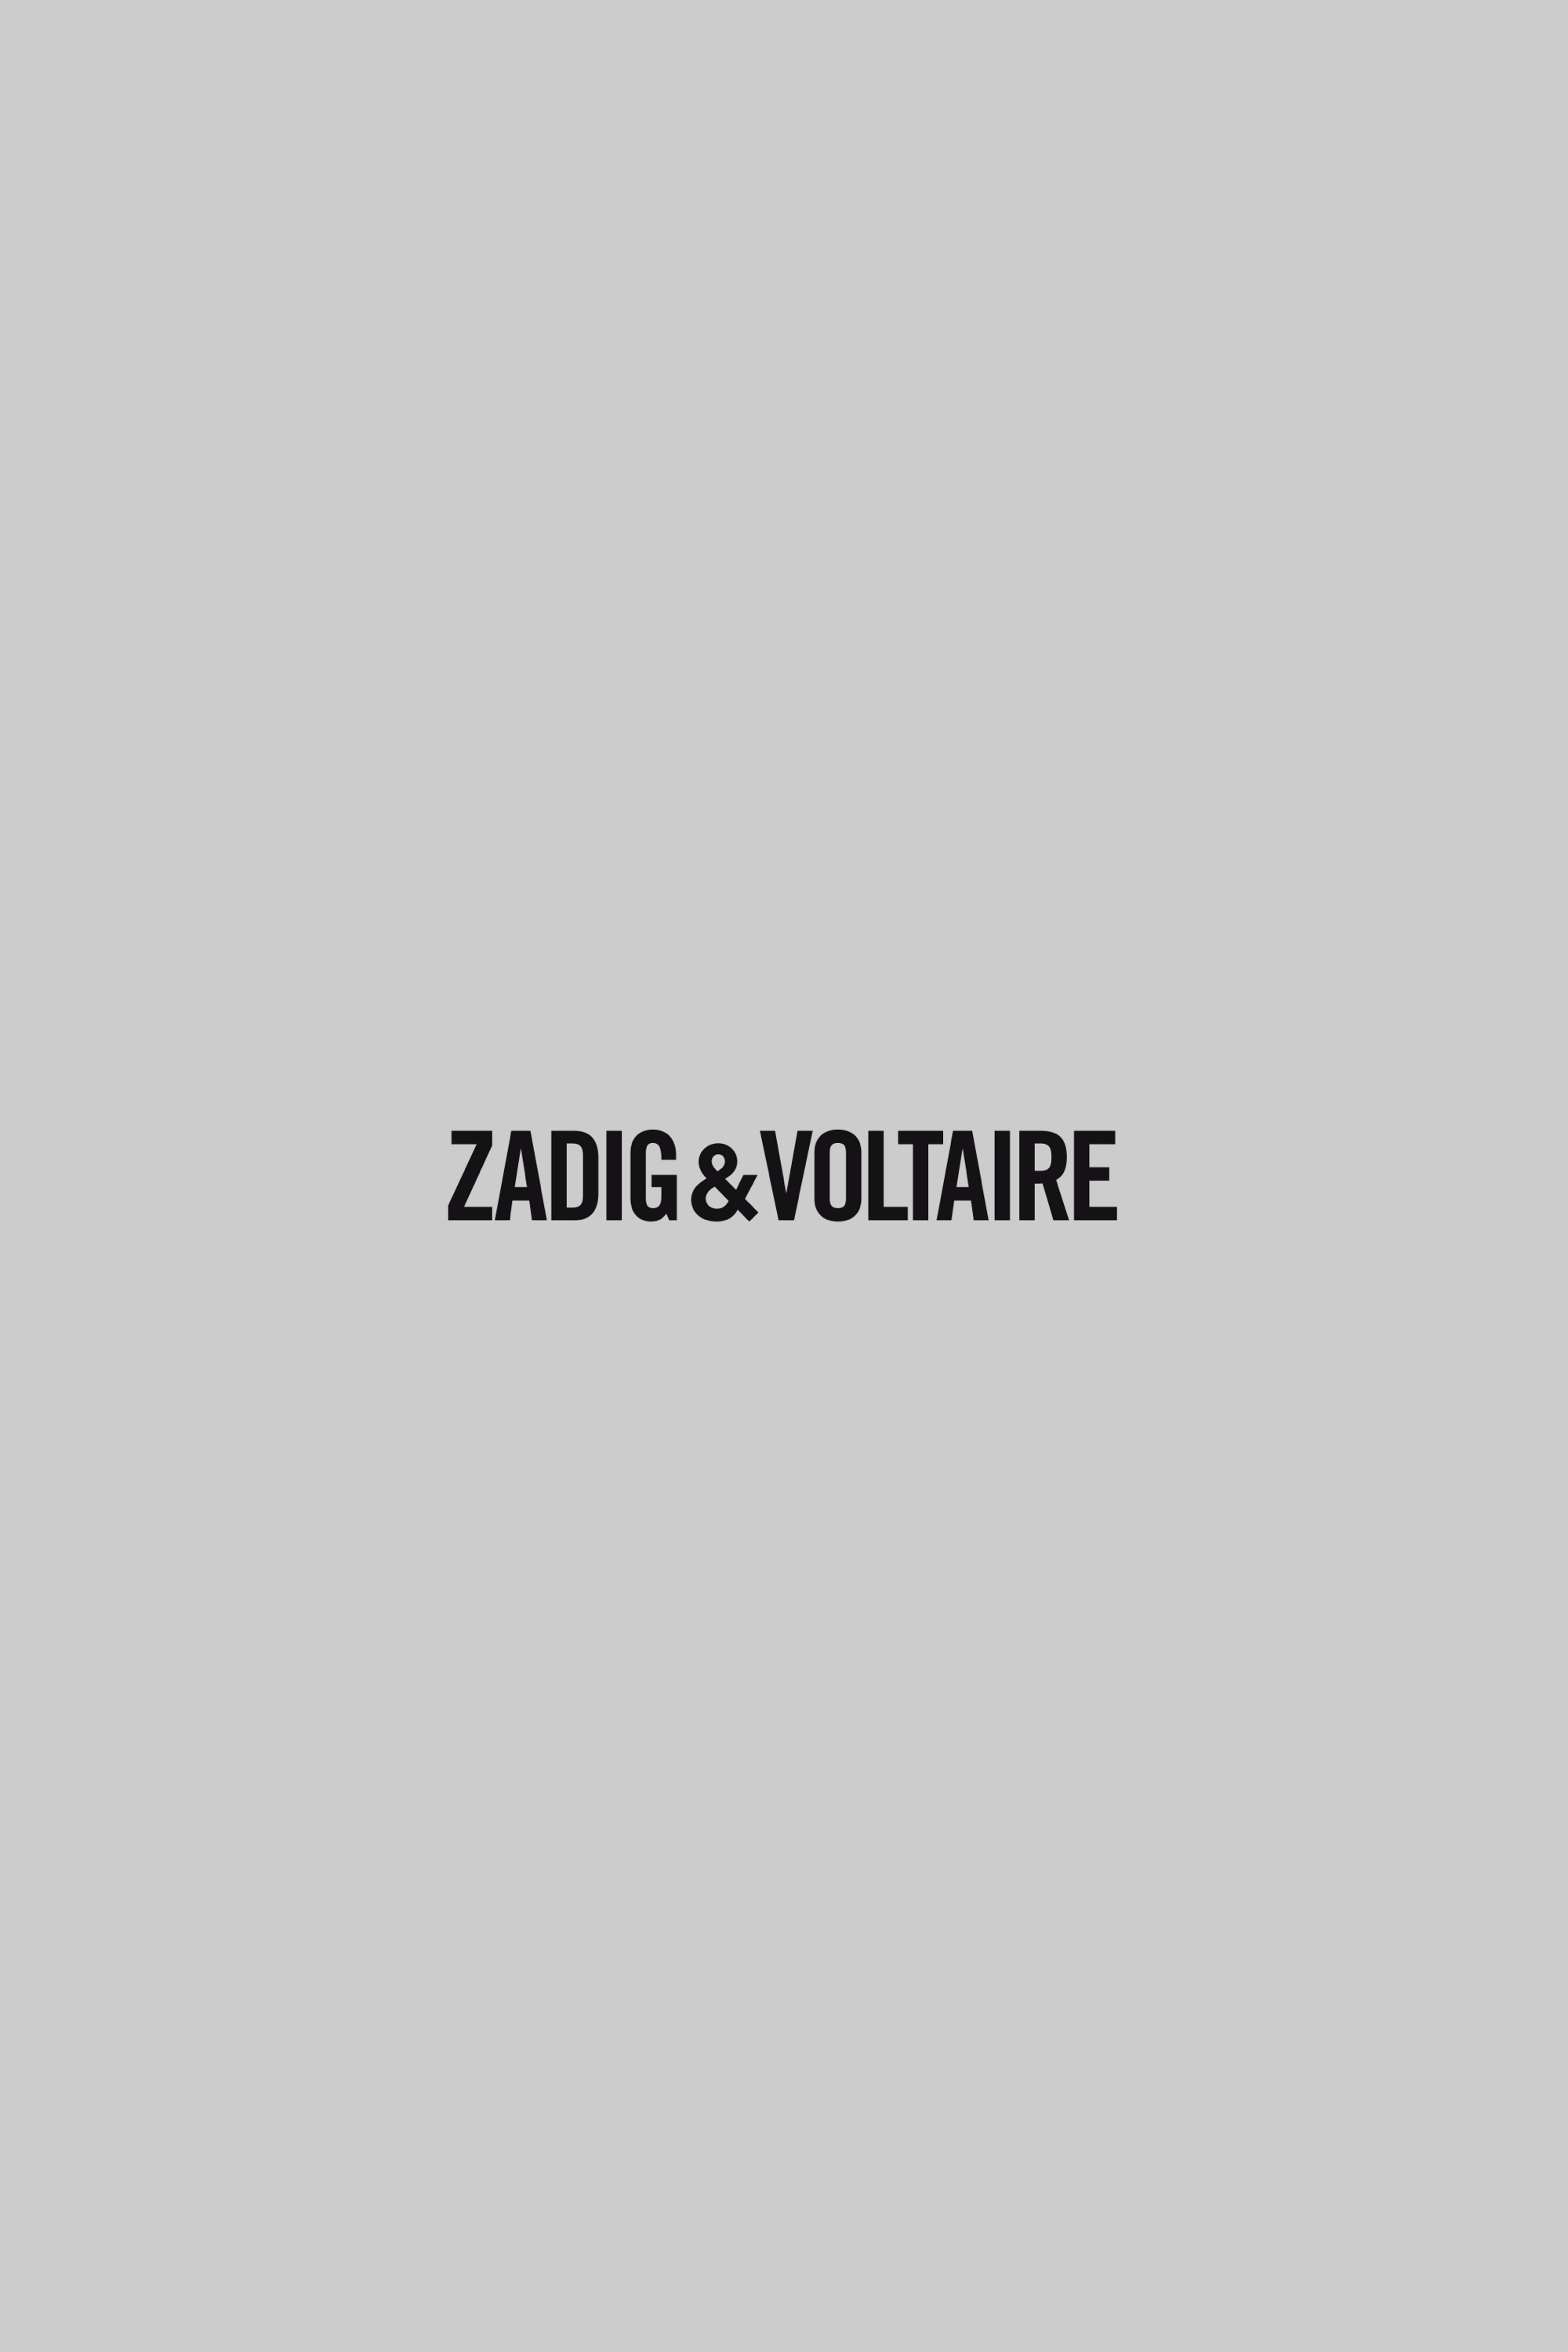 Zadig&Voltaire Rone lace trim dress Discount Outlet Store Outlet Perfect Discount Cost aoK3f84Ad